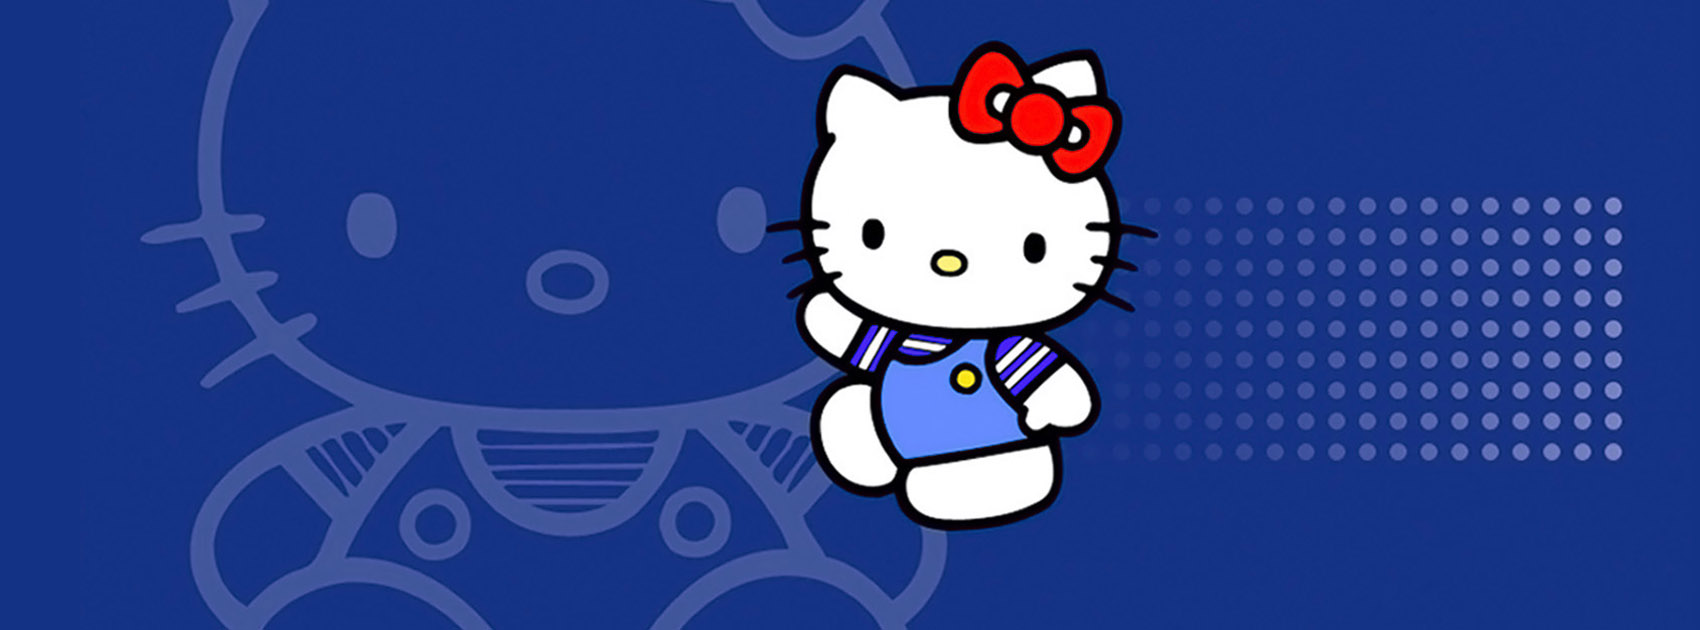 Vancouver Canucks Iphone Wallpaper Hello Kitty Blue Reverse Facebook Timeline Cover Photo Jpg